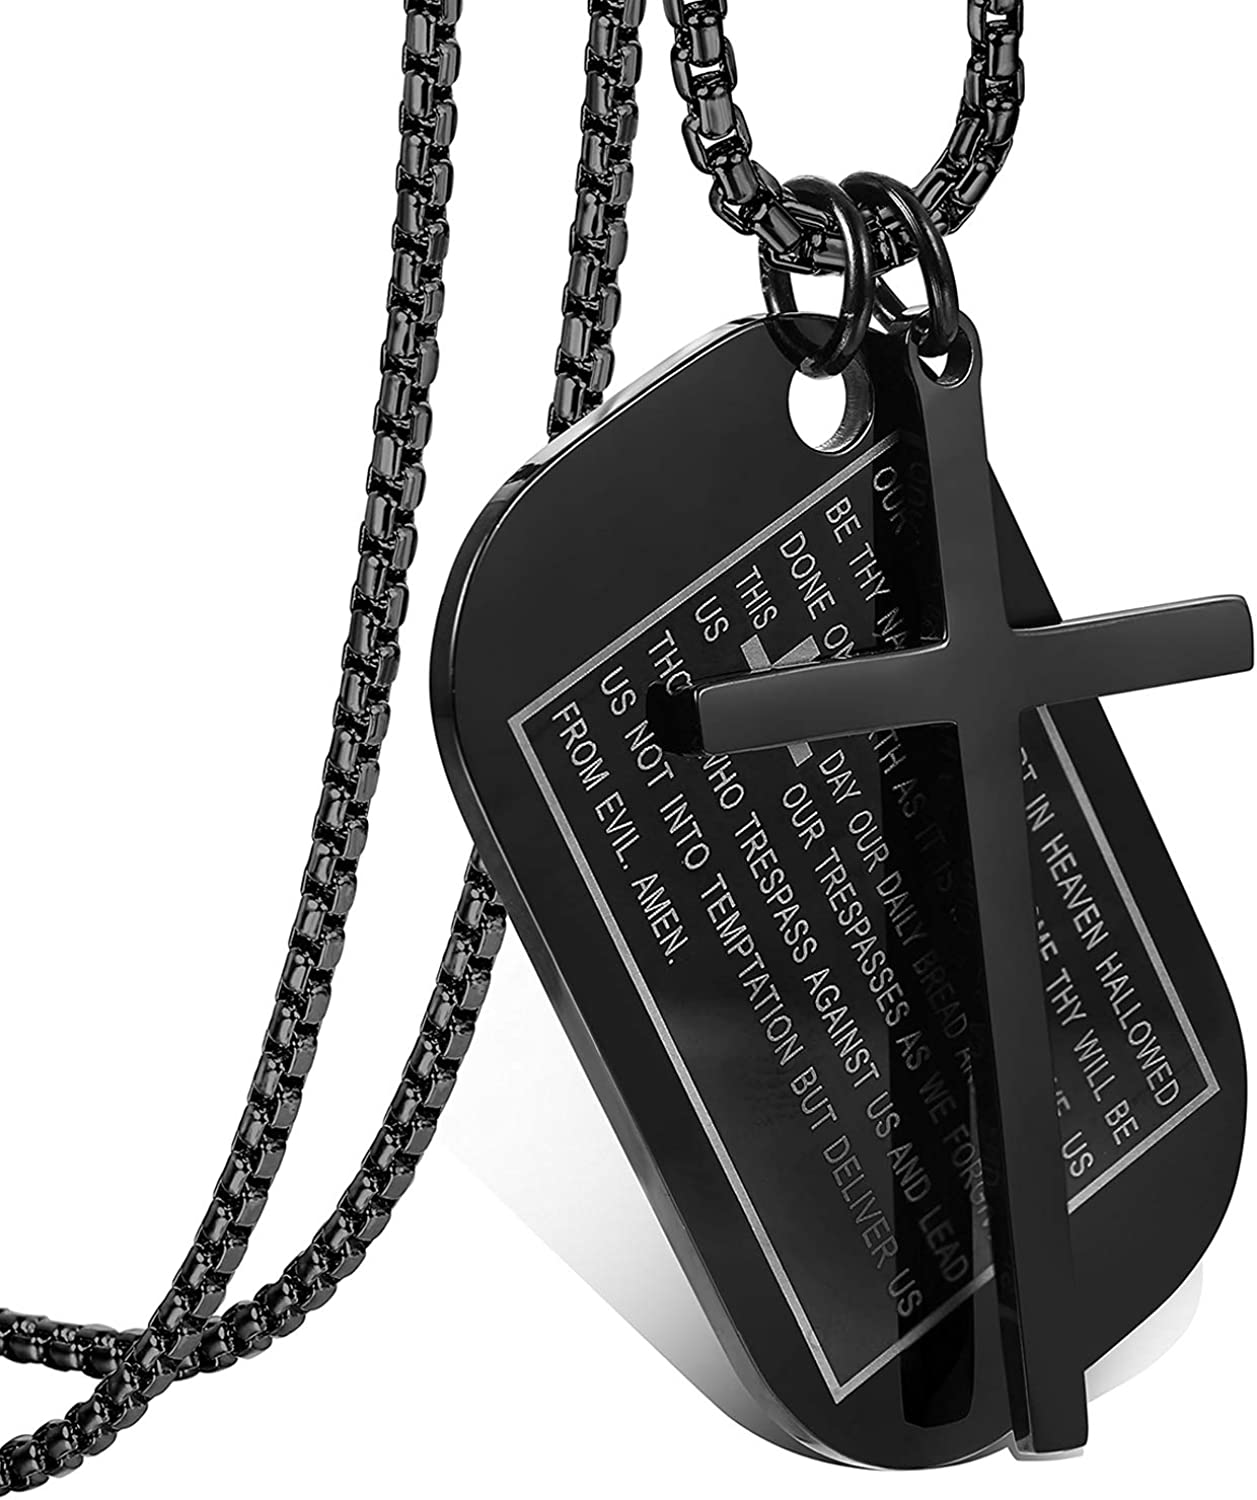 Cupimatch Men's English Bible Dog Tags Cross Prayer Pendant Necklaces, Stainless Steel Jesus Verse Lords Catholic Necklace Chain 24""